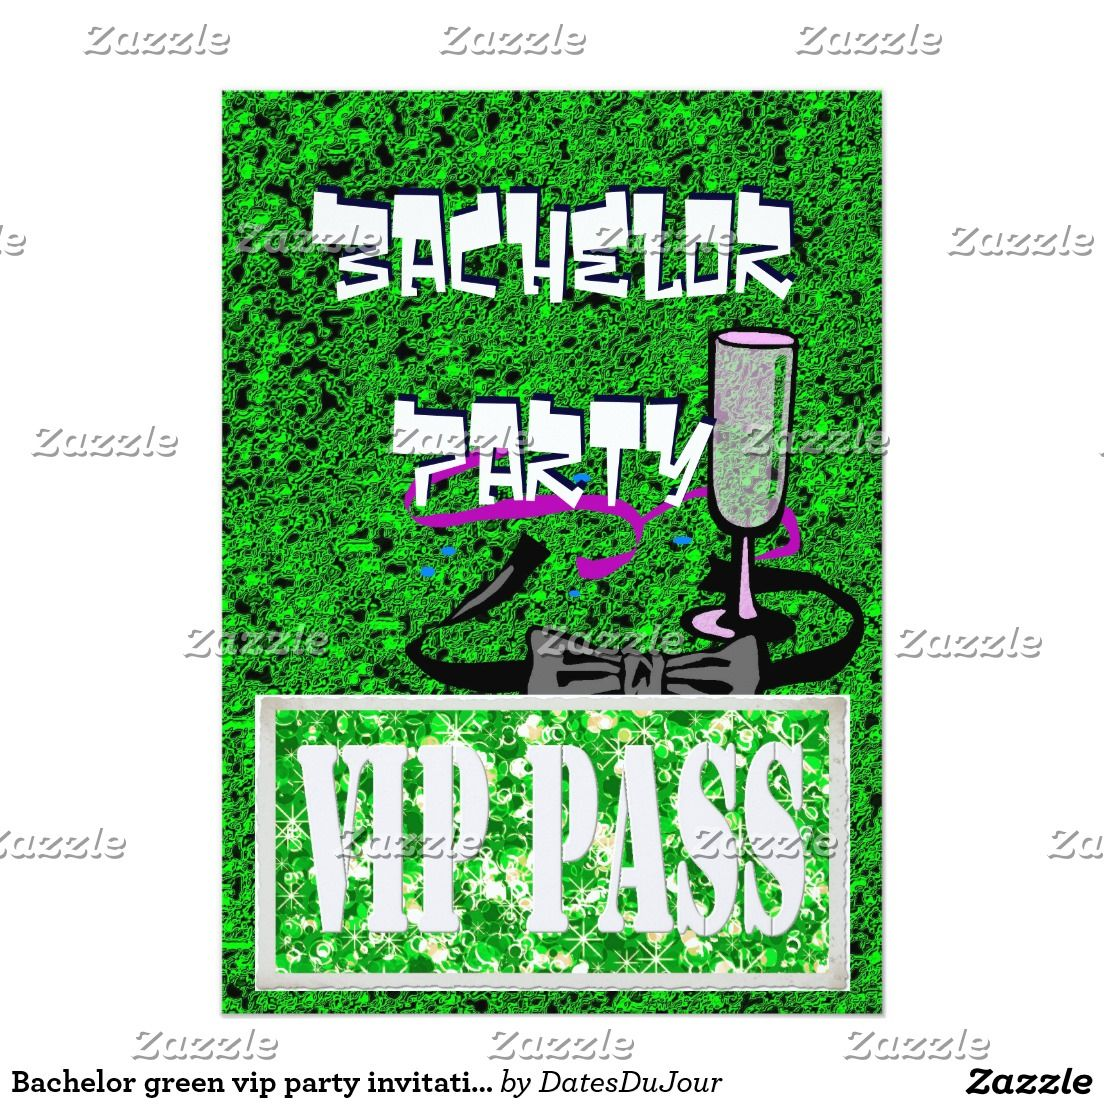 Bachelor green vip party invitation | Bachelor Party Invitations ...